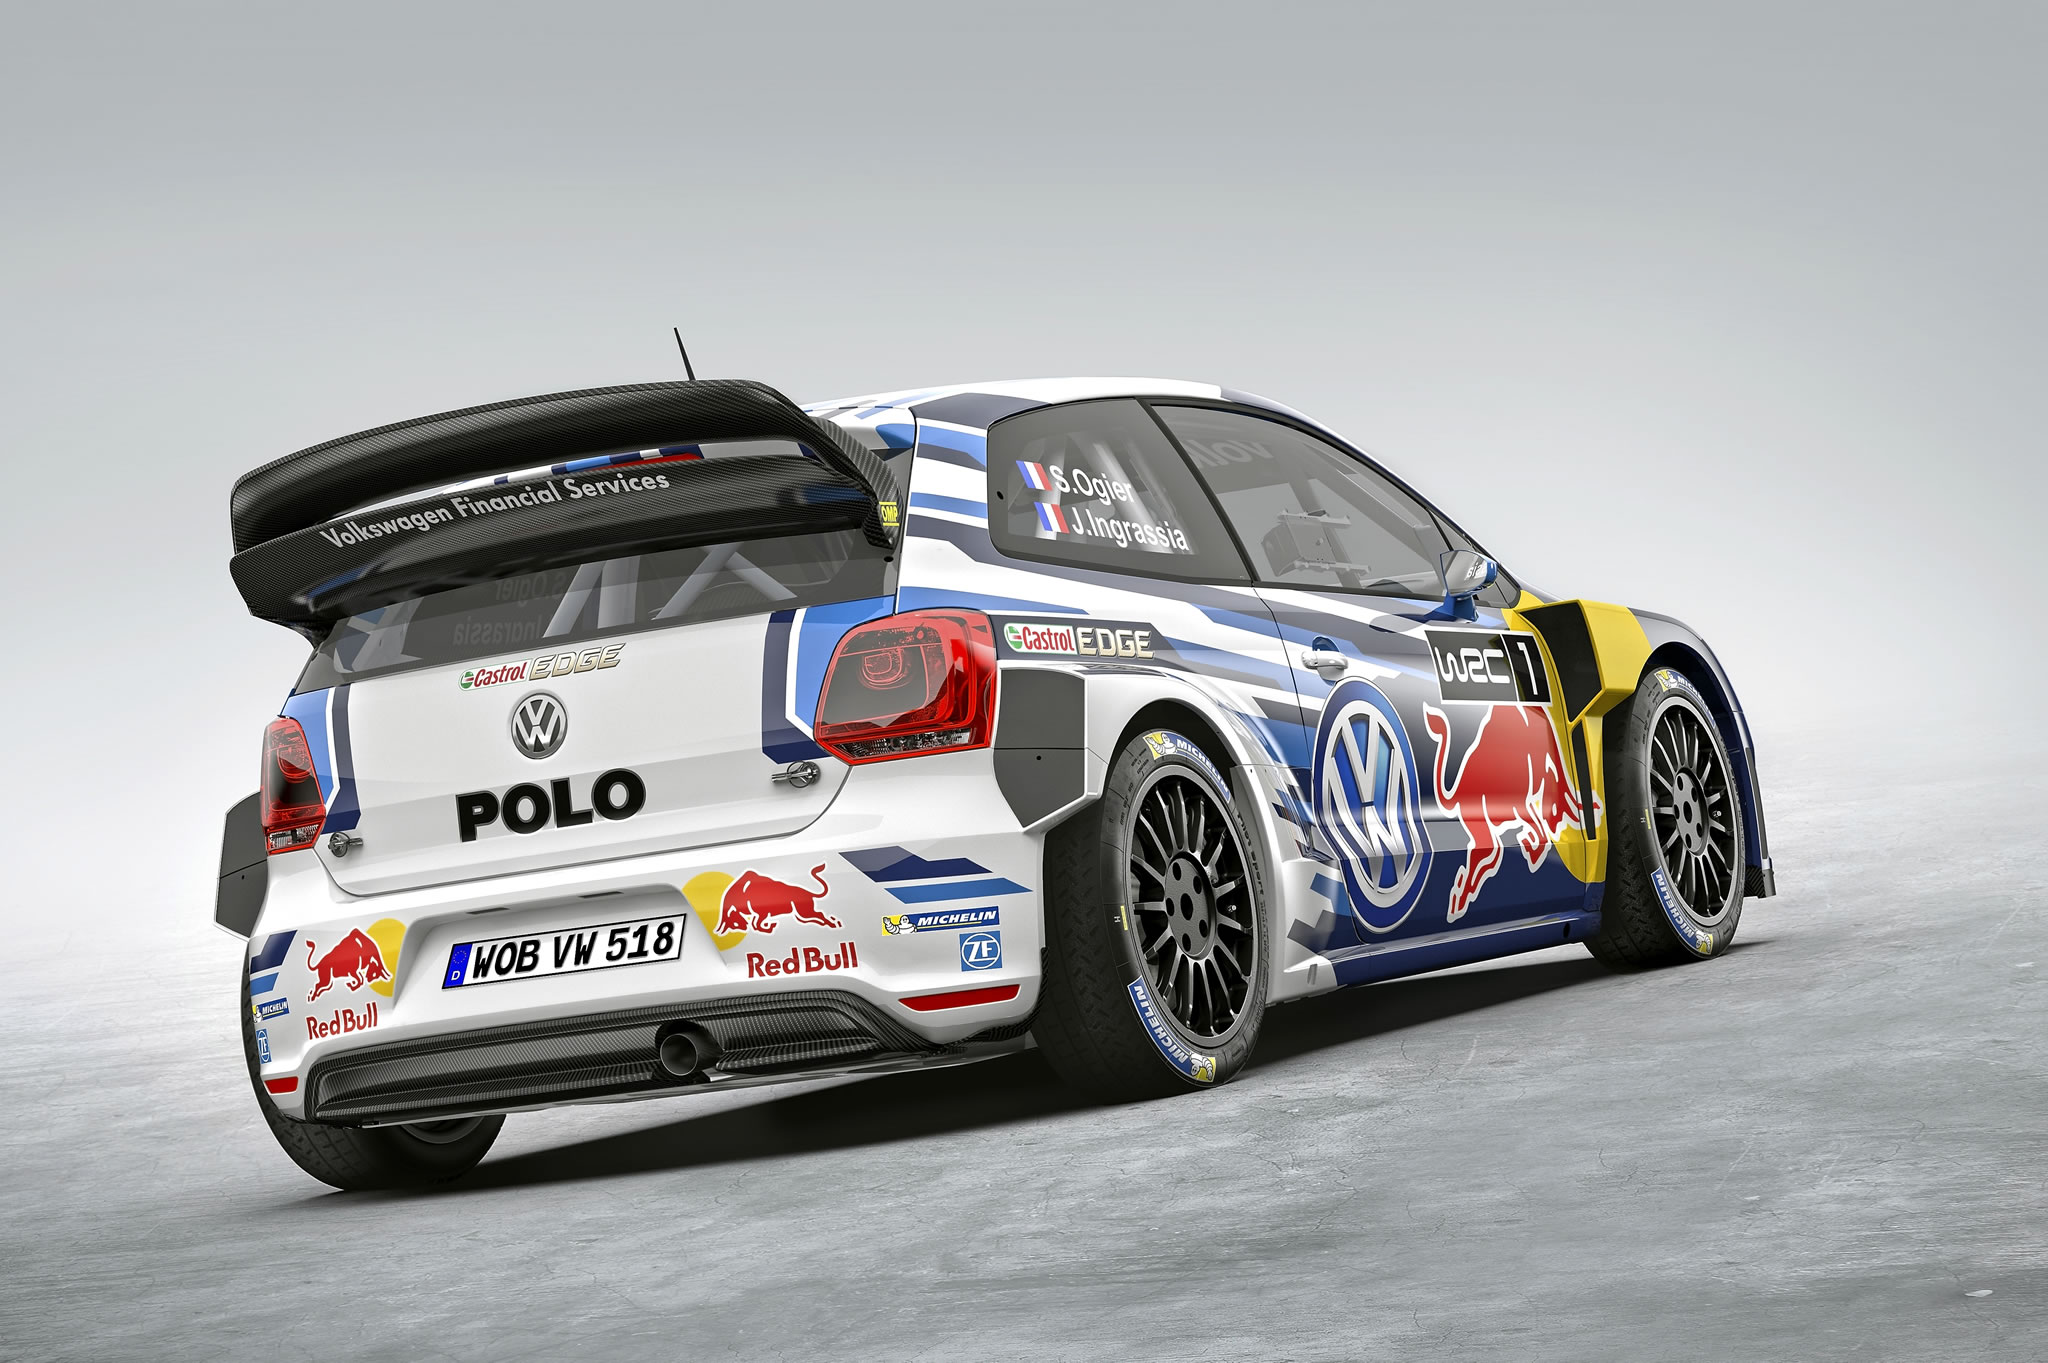 2015 volkswagen polo r wrc rally car rear photo sebastien ogier 39 s race car size 2048 x 1363. Black Bedroom Furniture Sets. Home Design Ideas